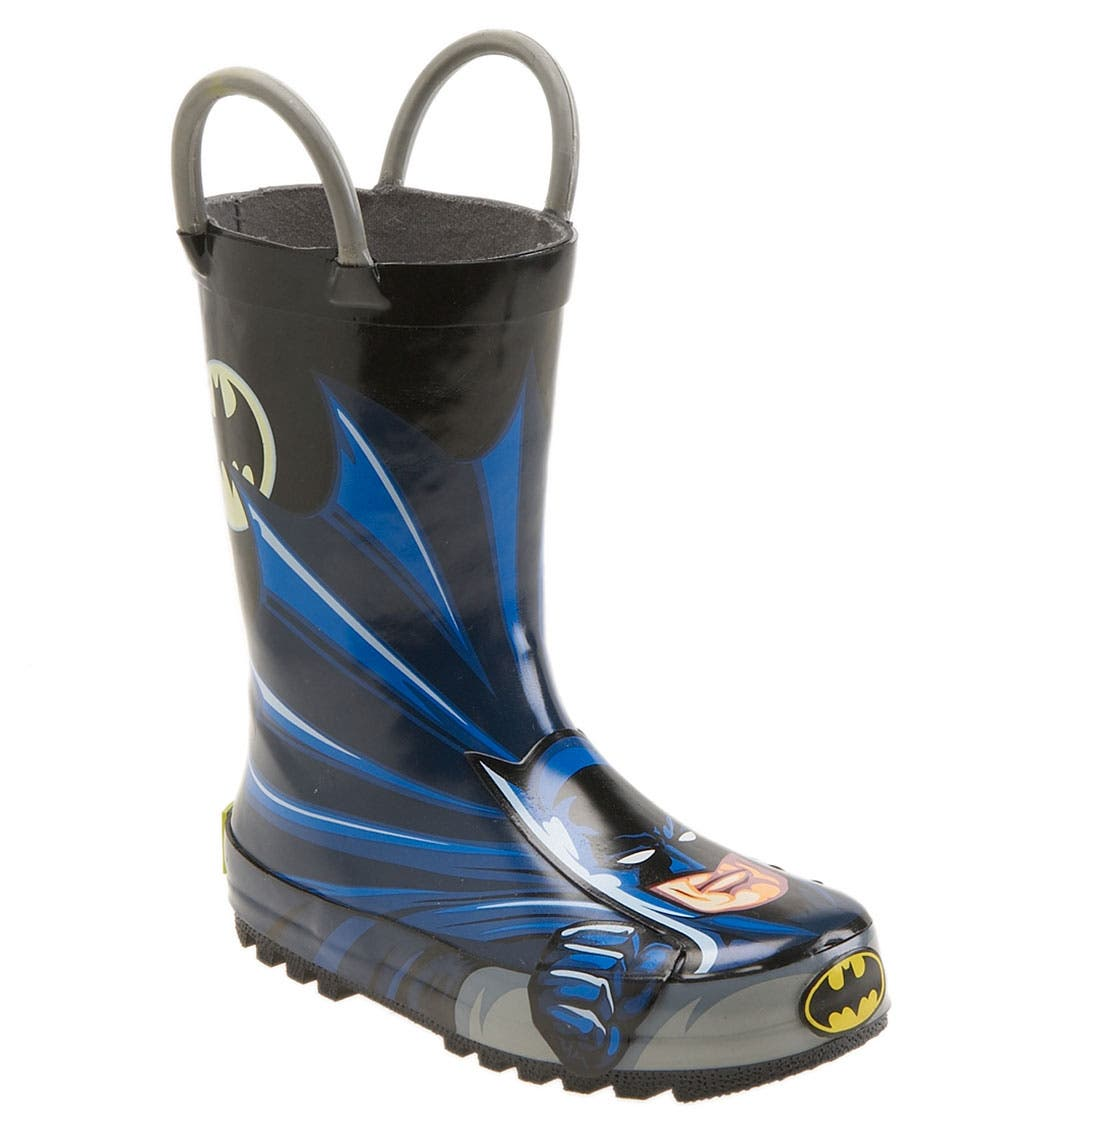 Alternate Image 1 Selected - Western Chief 'Batman' Rain Boot (Walker, Toddler, Little Kid & Big Kid)